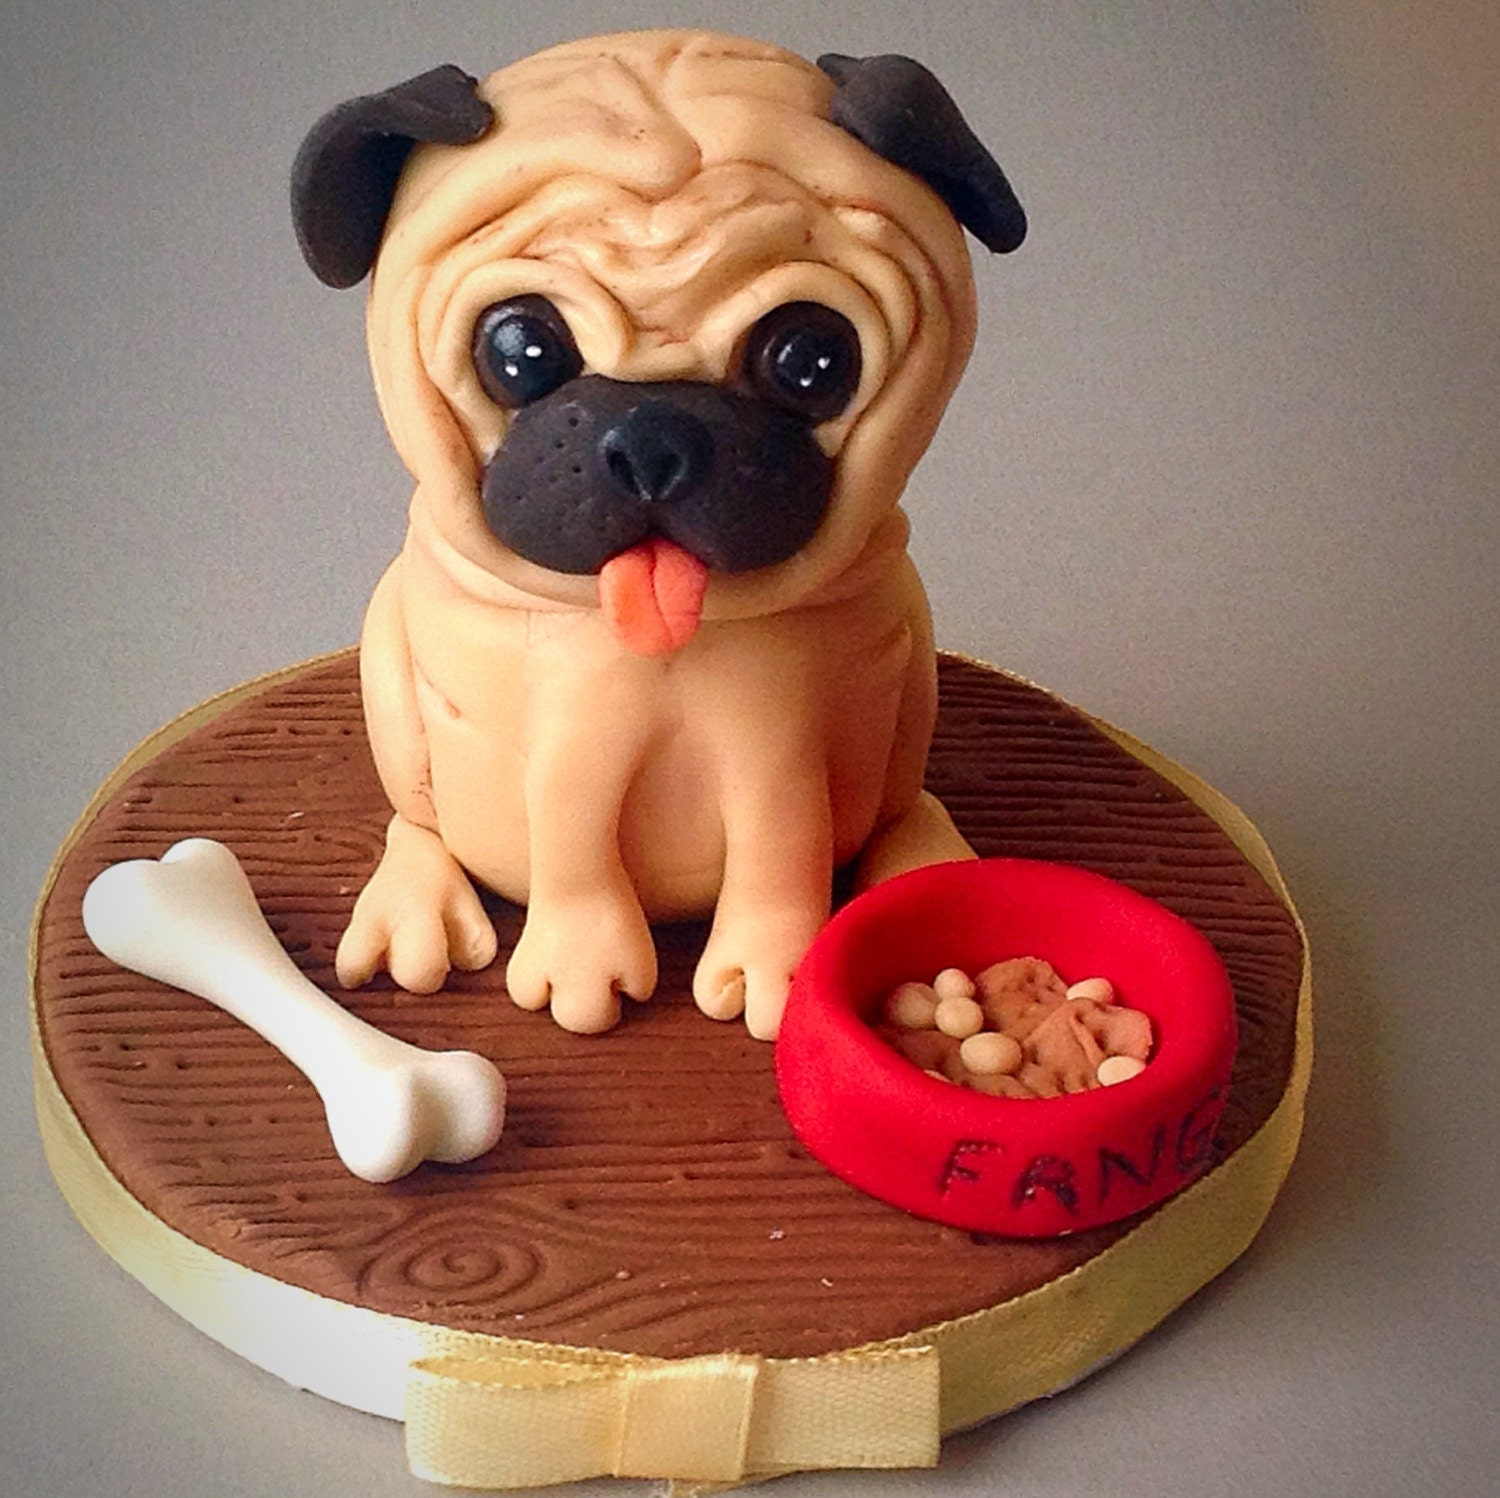 Where Can I Order A Birthday Cake For My Dog